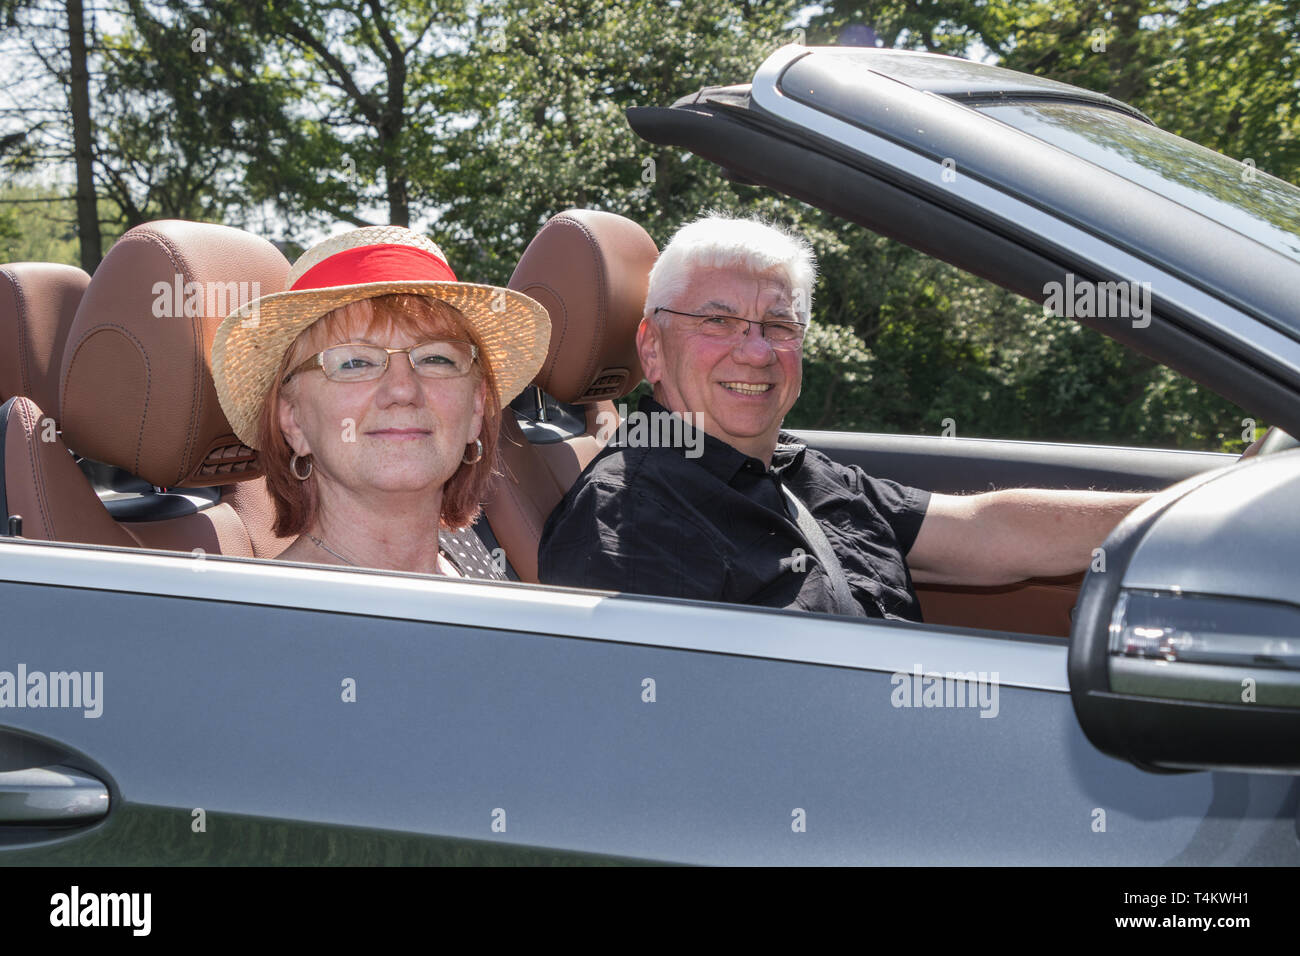 Older couple drives with a luxury convertible car - Stock Image